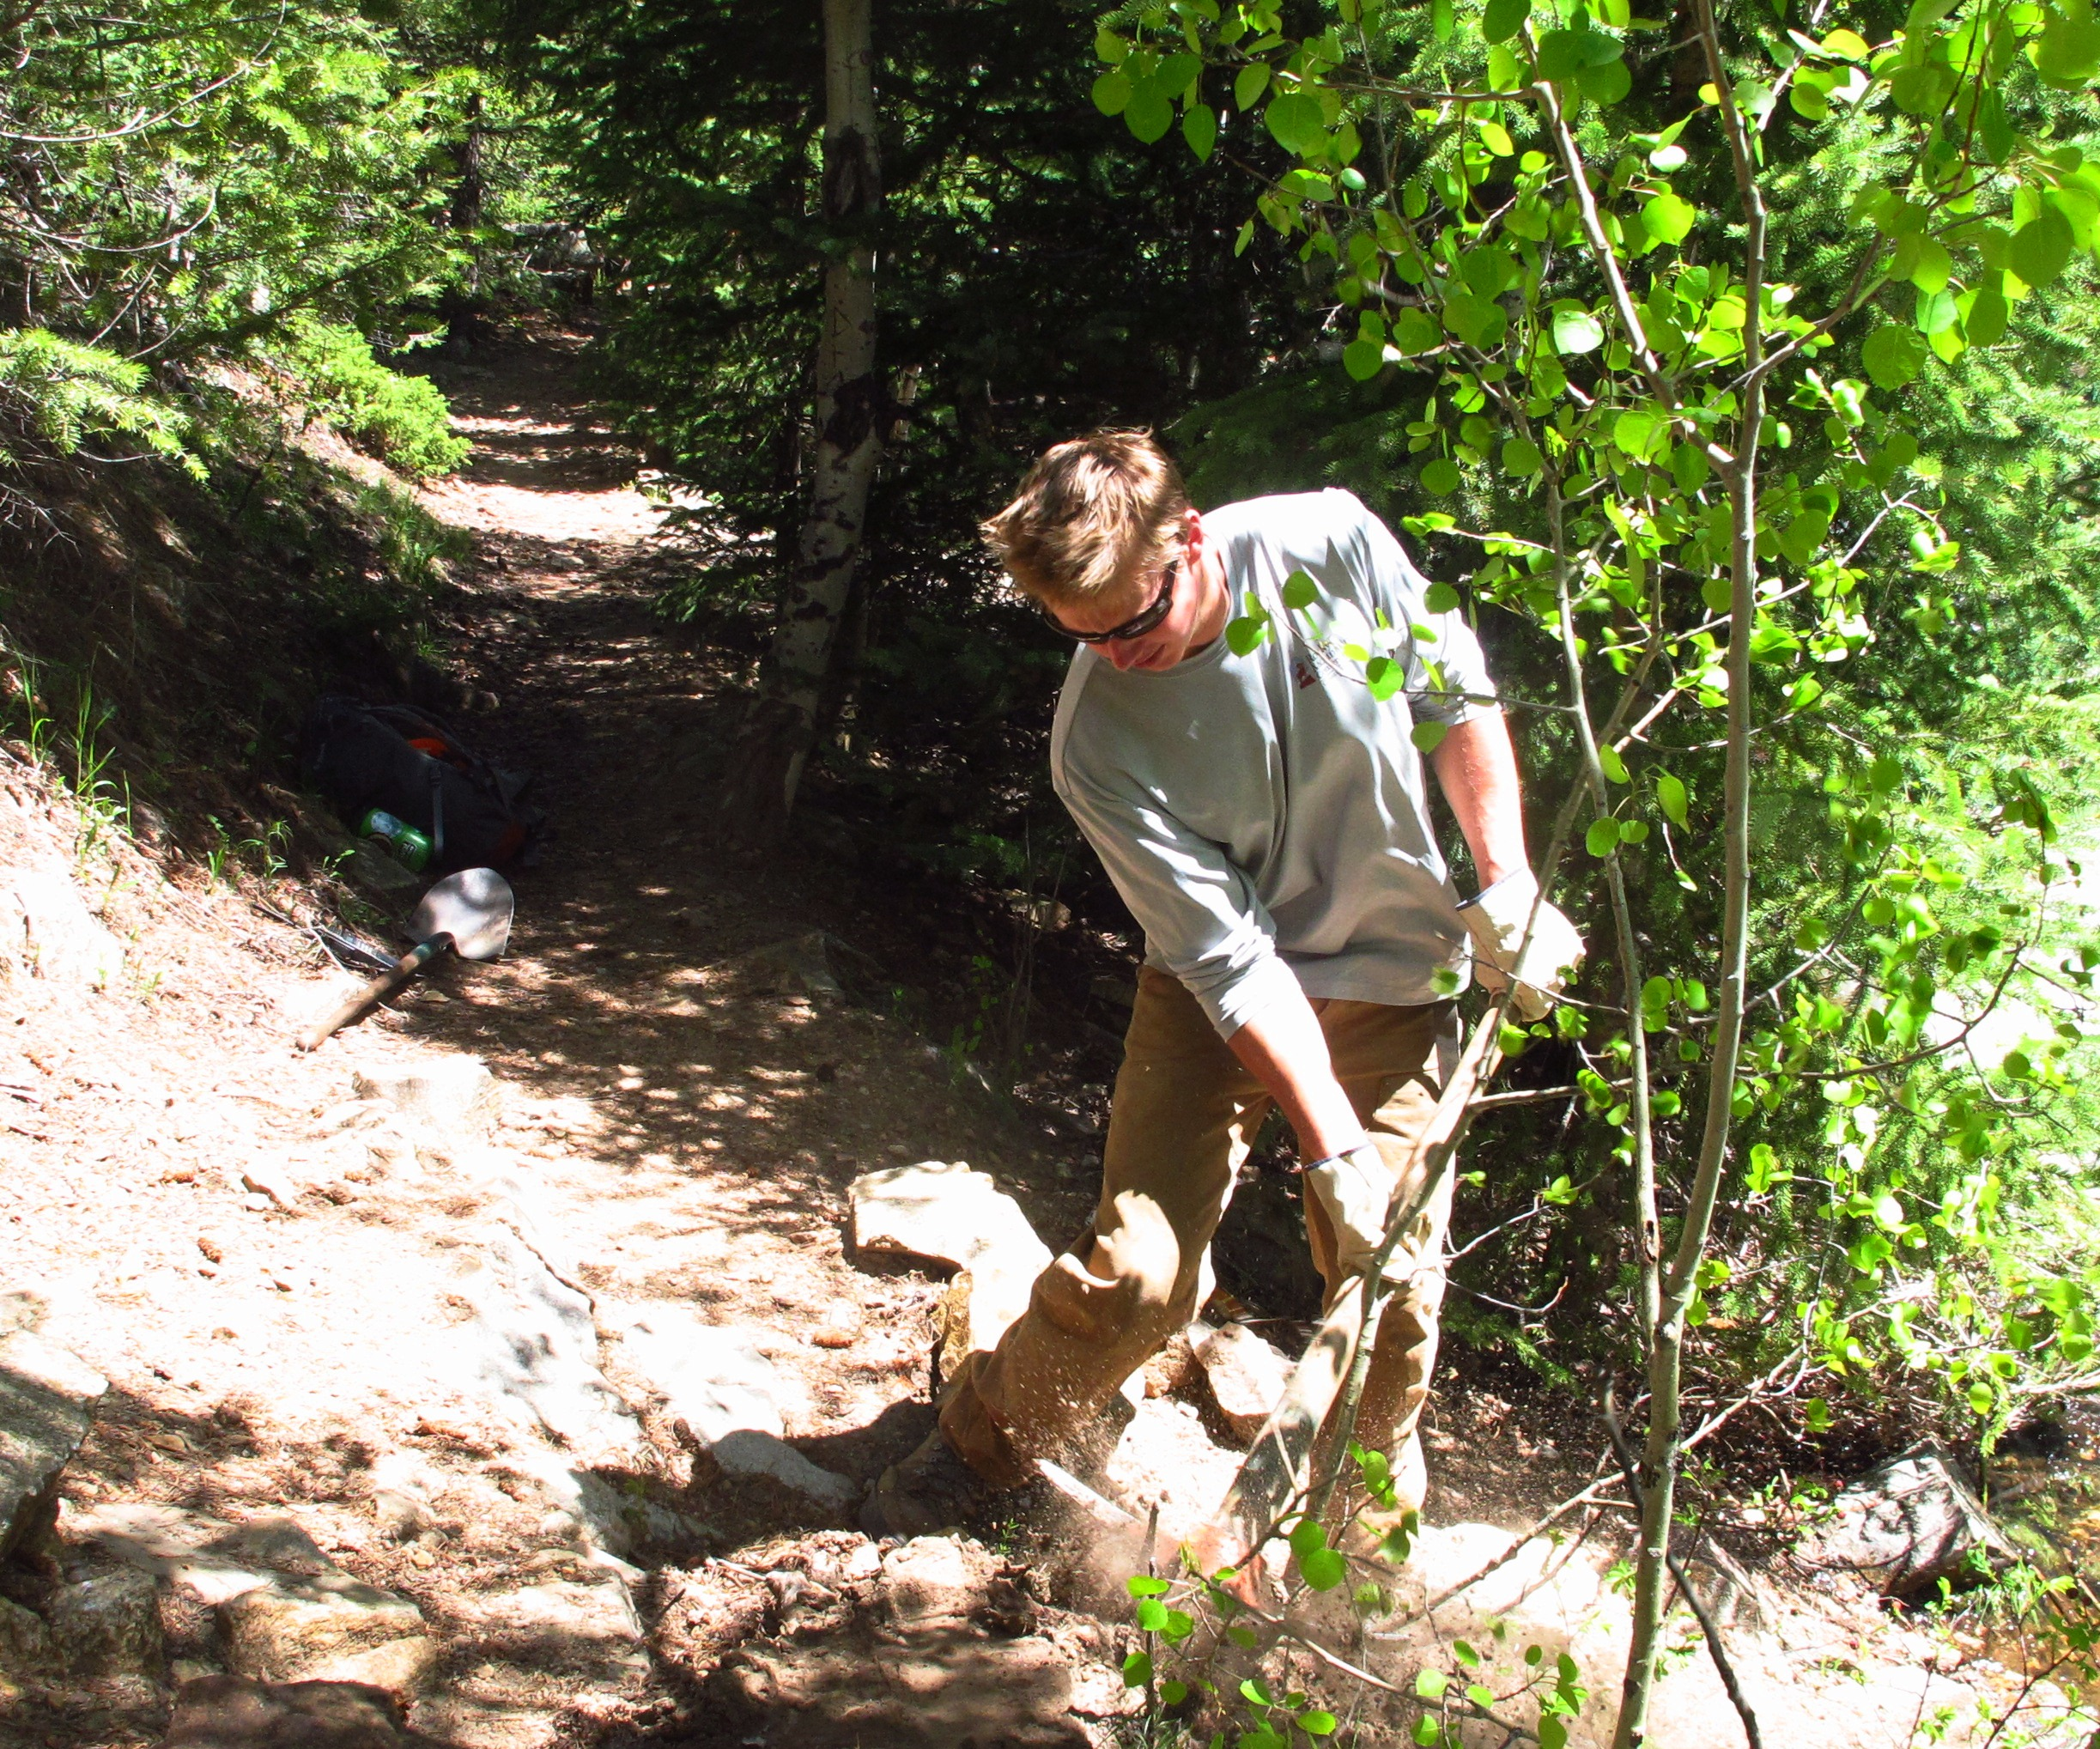 Jake clearing brush to build a rock wall.